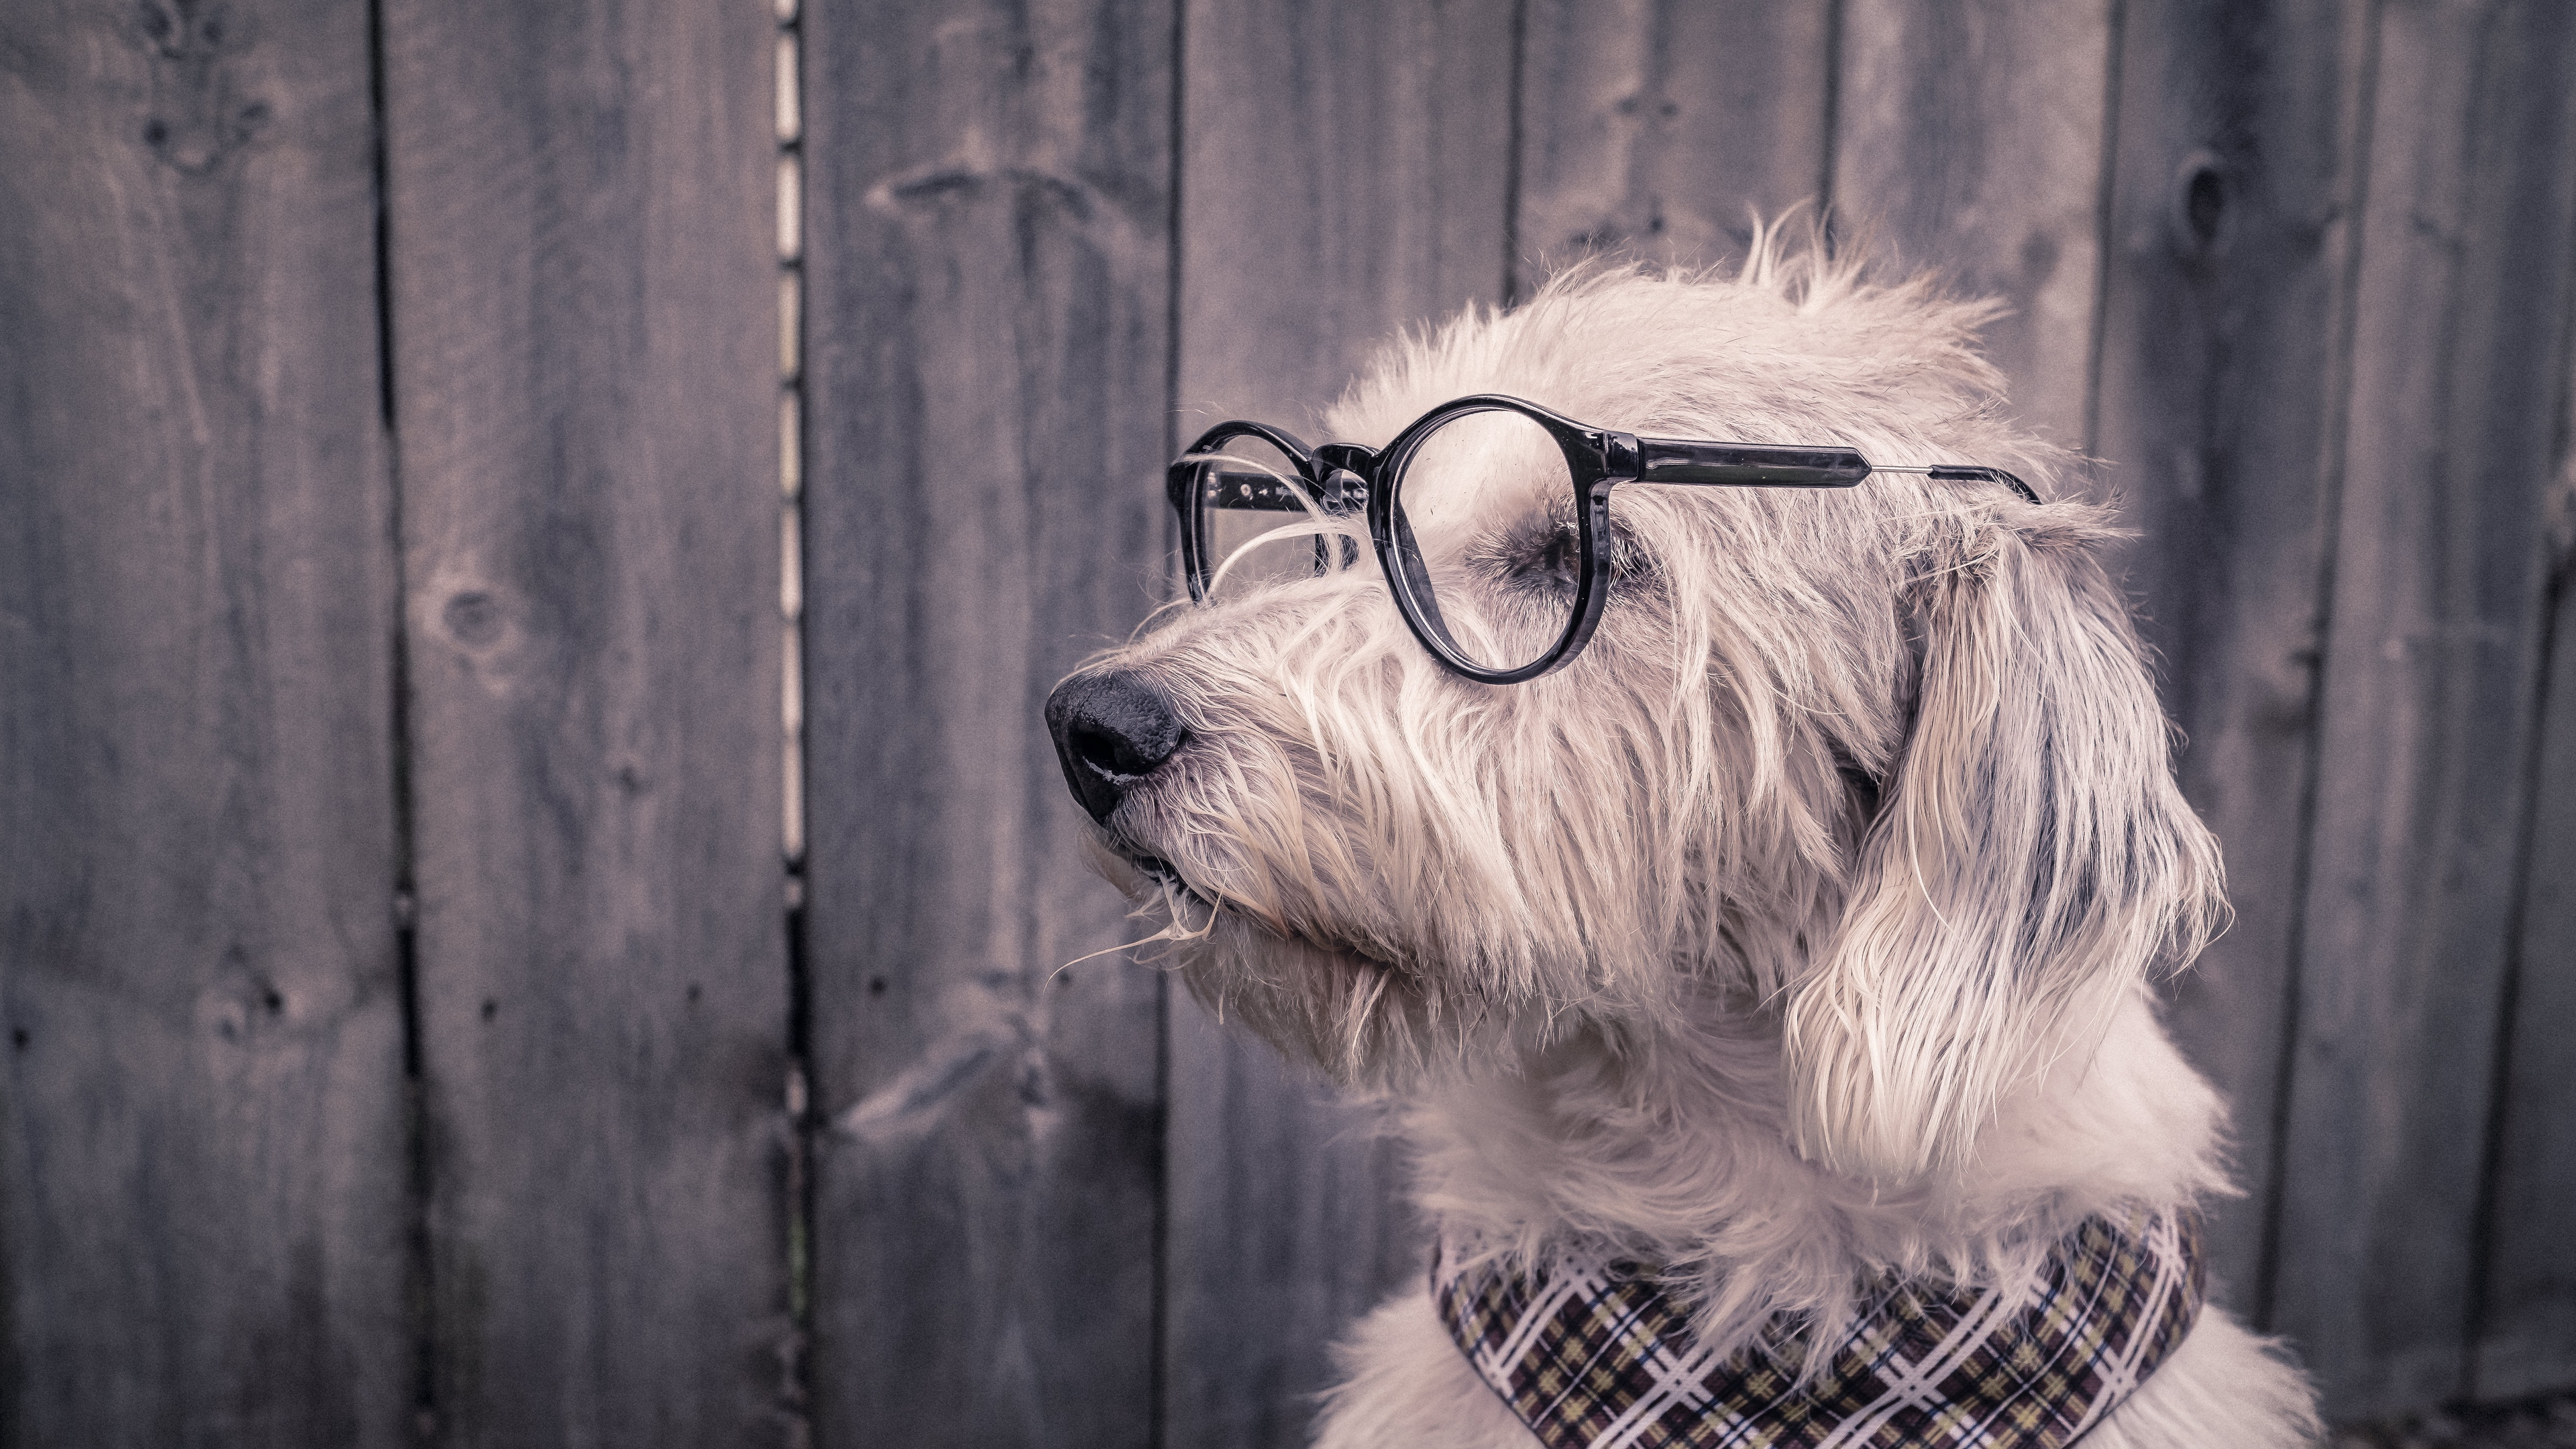 dog glasses scarf 4k 1542242481 - dog, glasses, scarf 4k - scarf, glasses, Dog